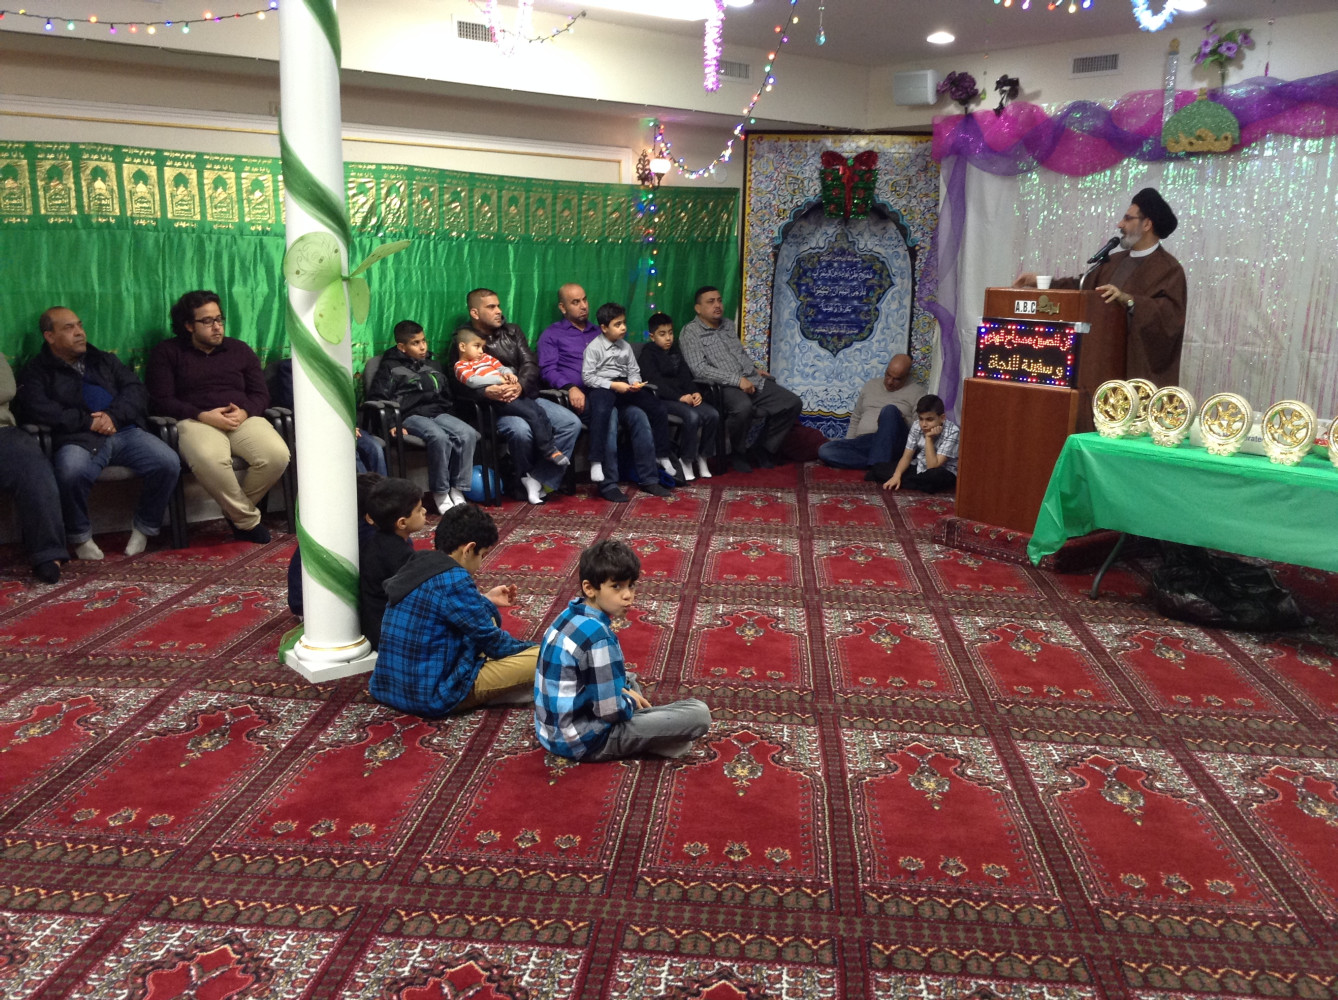 Sponsor of lecture event by Imam Qazwini at Evanston